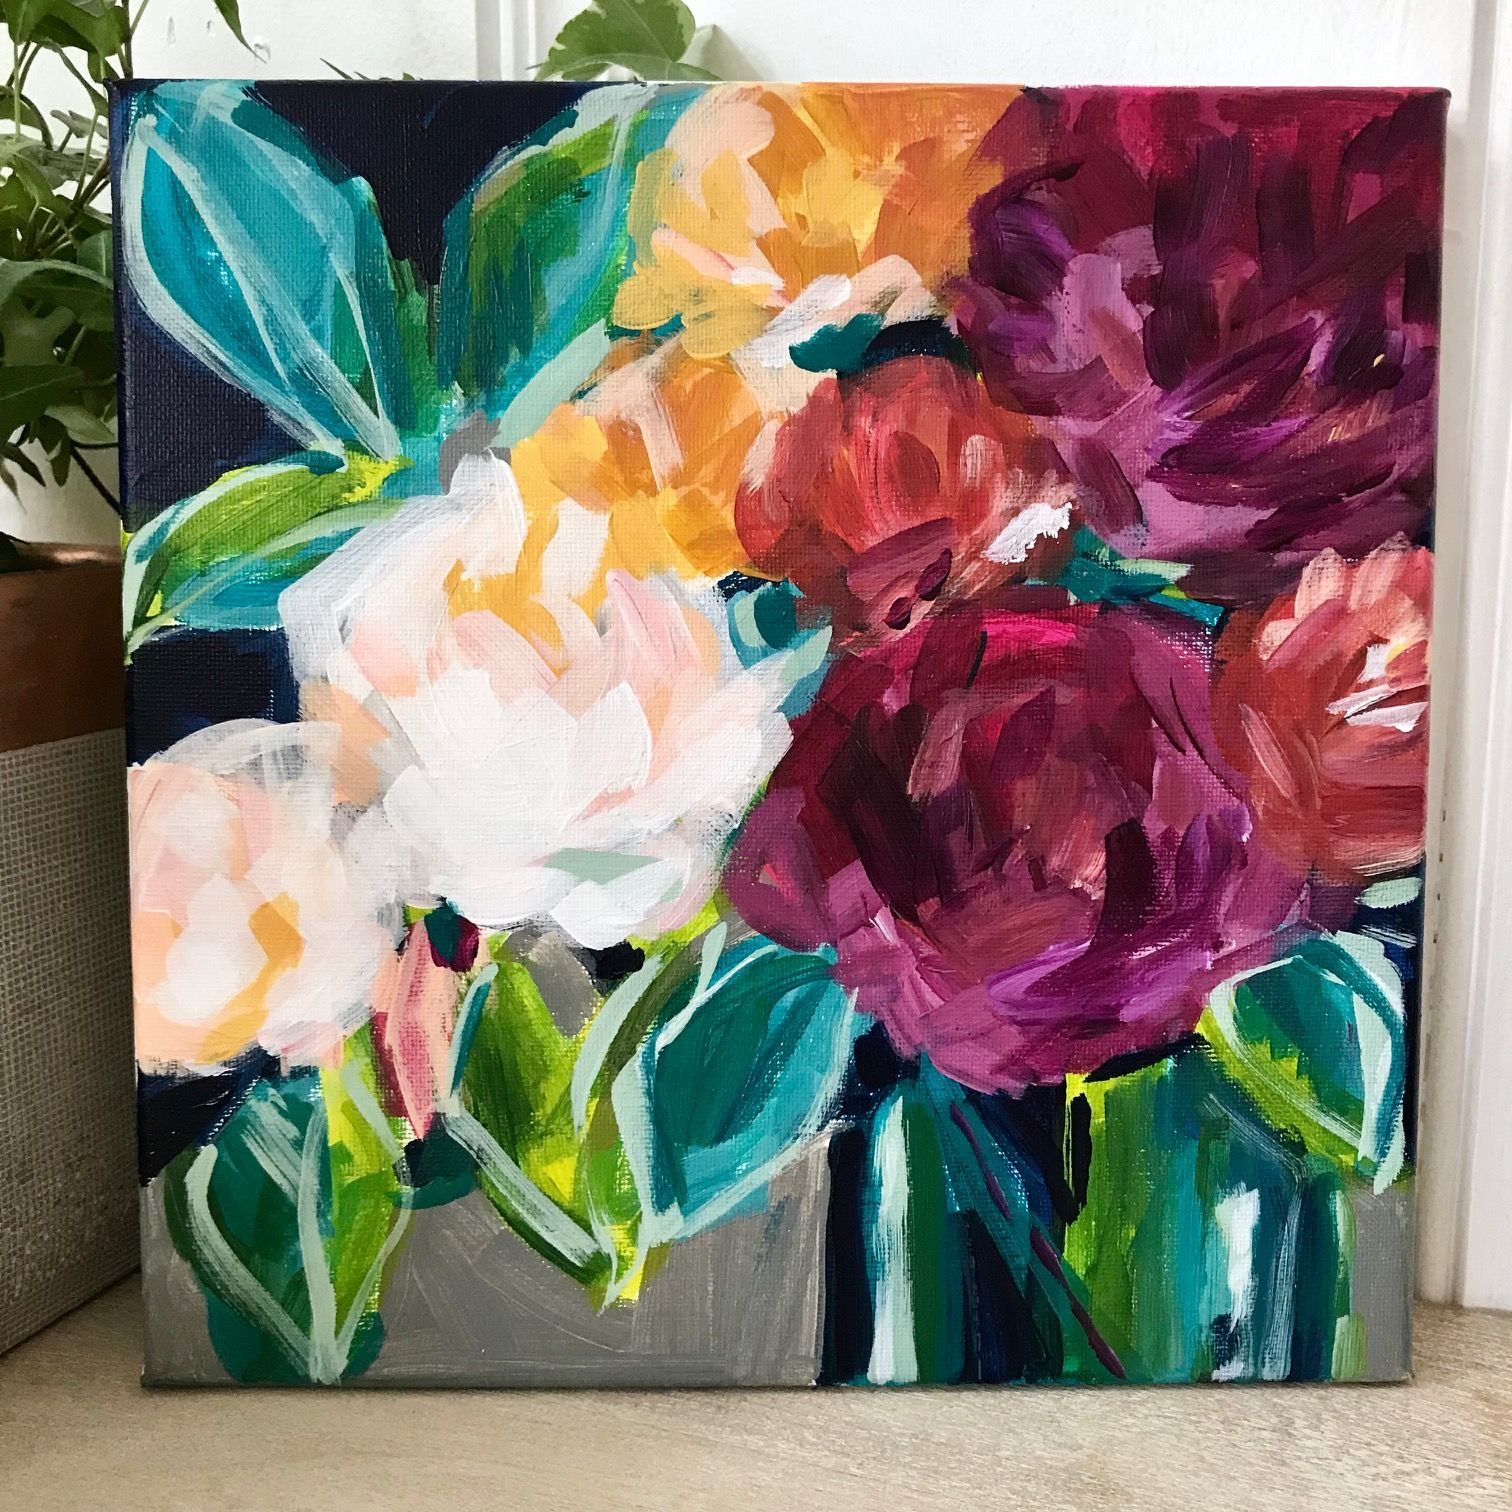 Diy Easy Abstract Flower Painting On Canvas With Acrylics Flower Painting Canvas Abstract Flowers Abstract Flower Painting